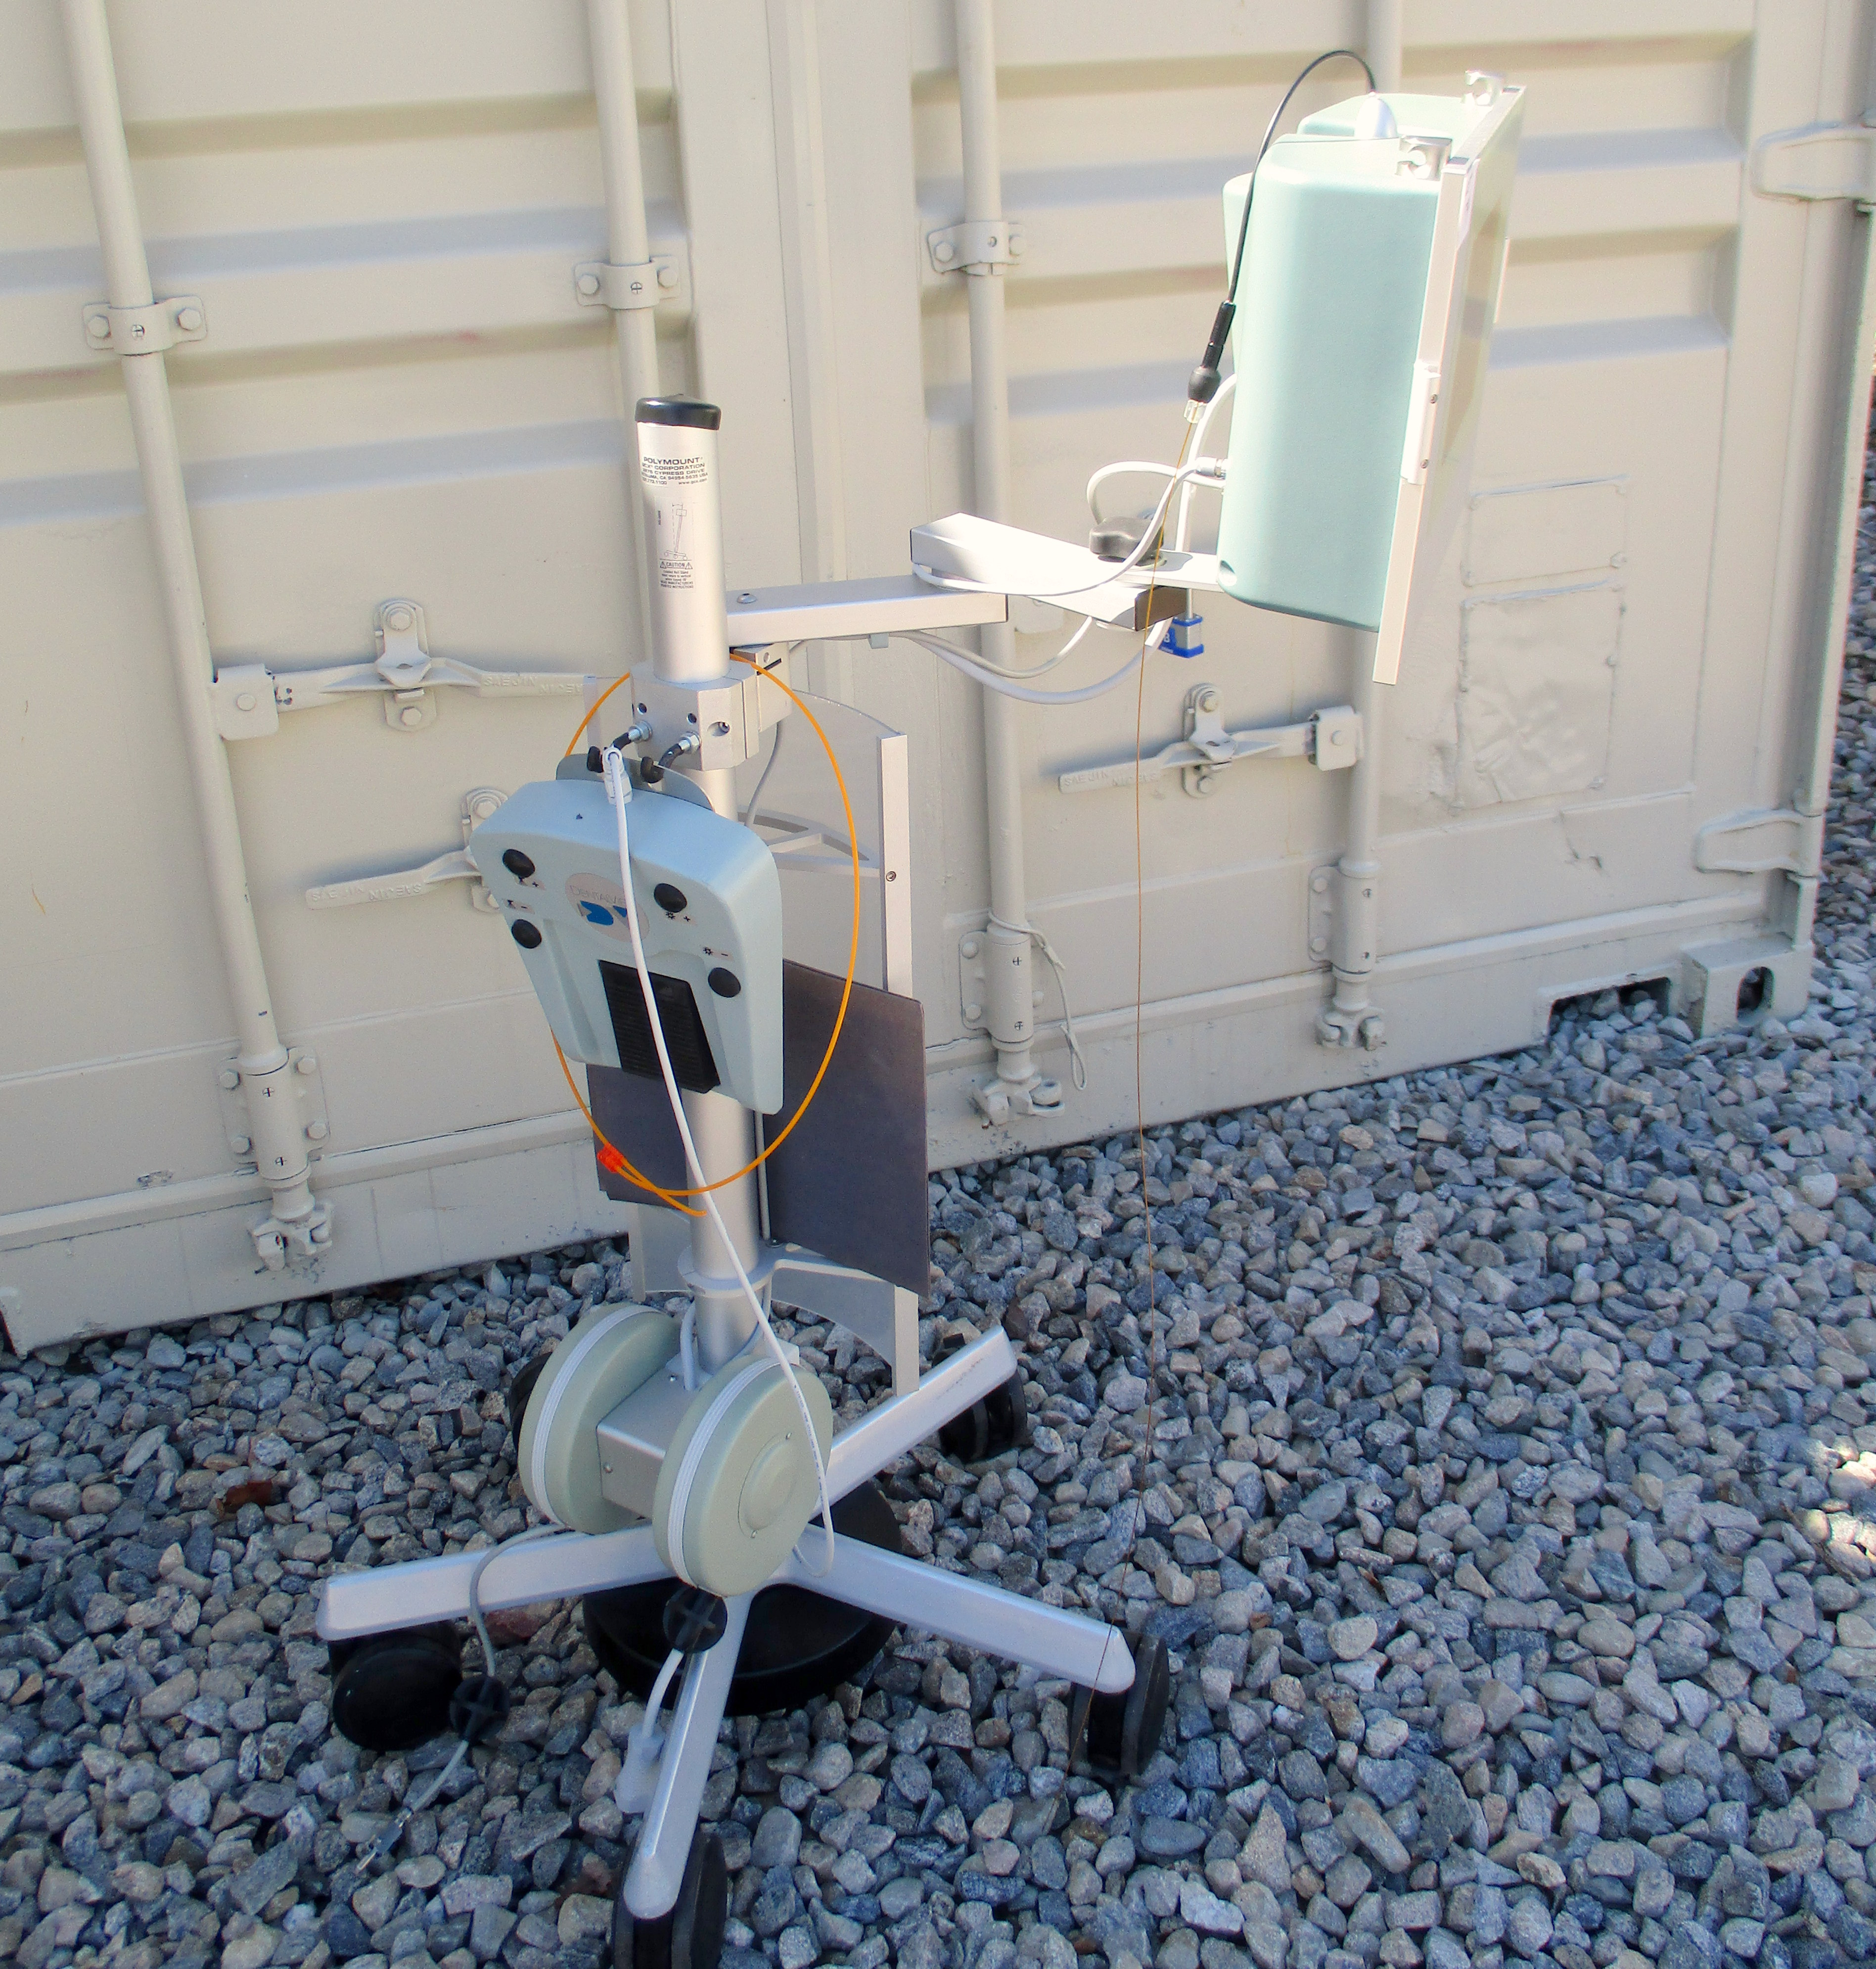 Lot 48 - Dental View DV-2 Periscopy Endoscope System on wheeled stand